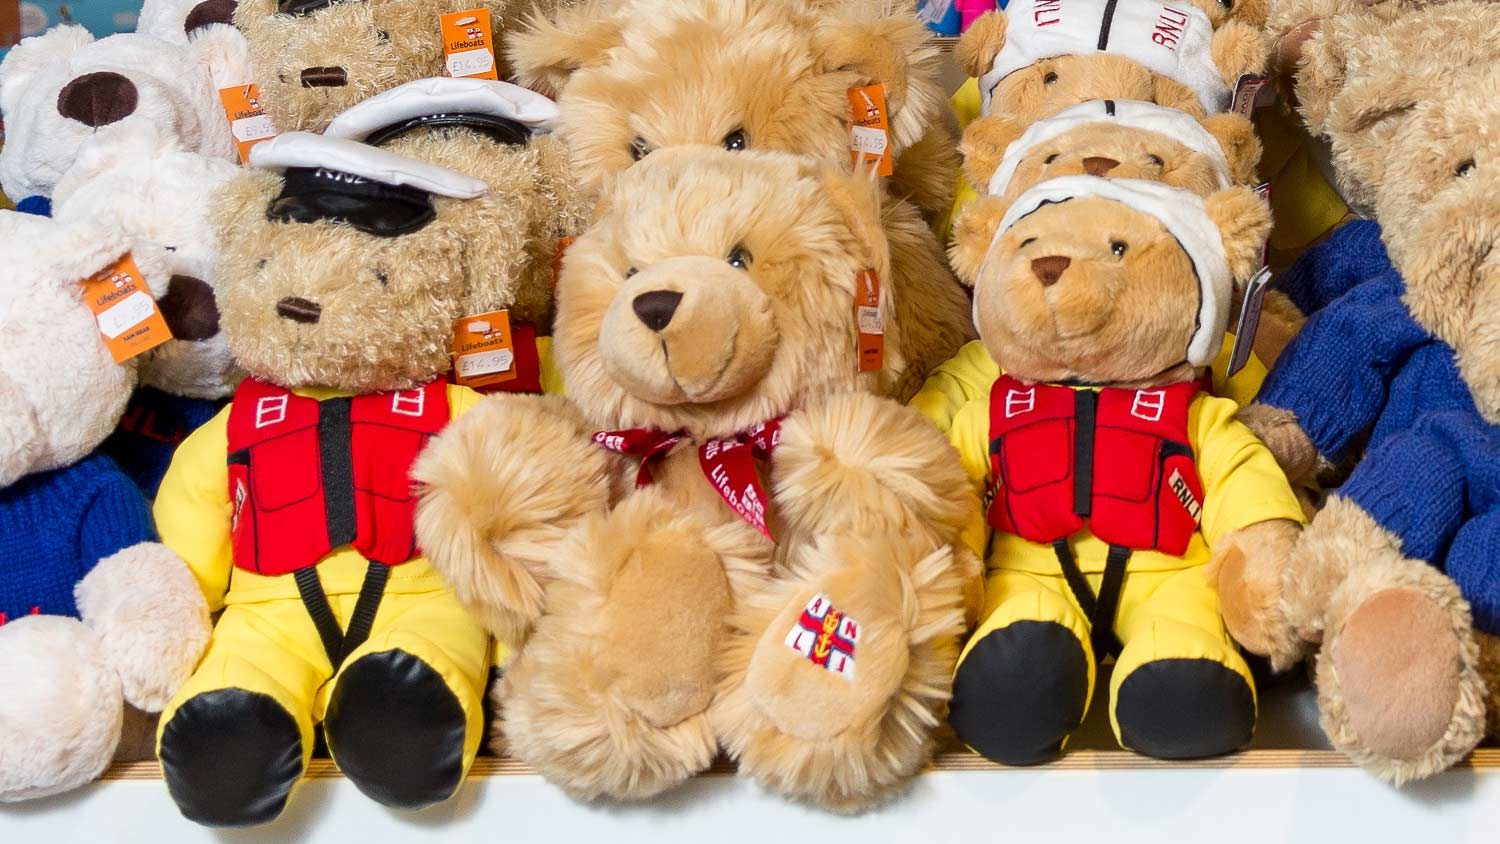 RNLI teddy bears on display at RNLI College shop in Poole